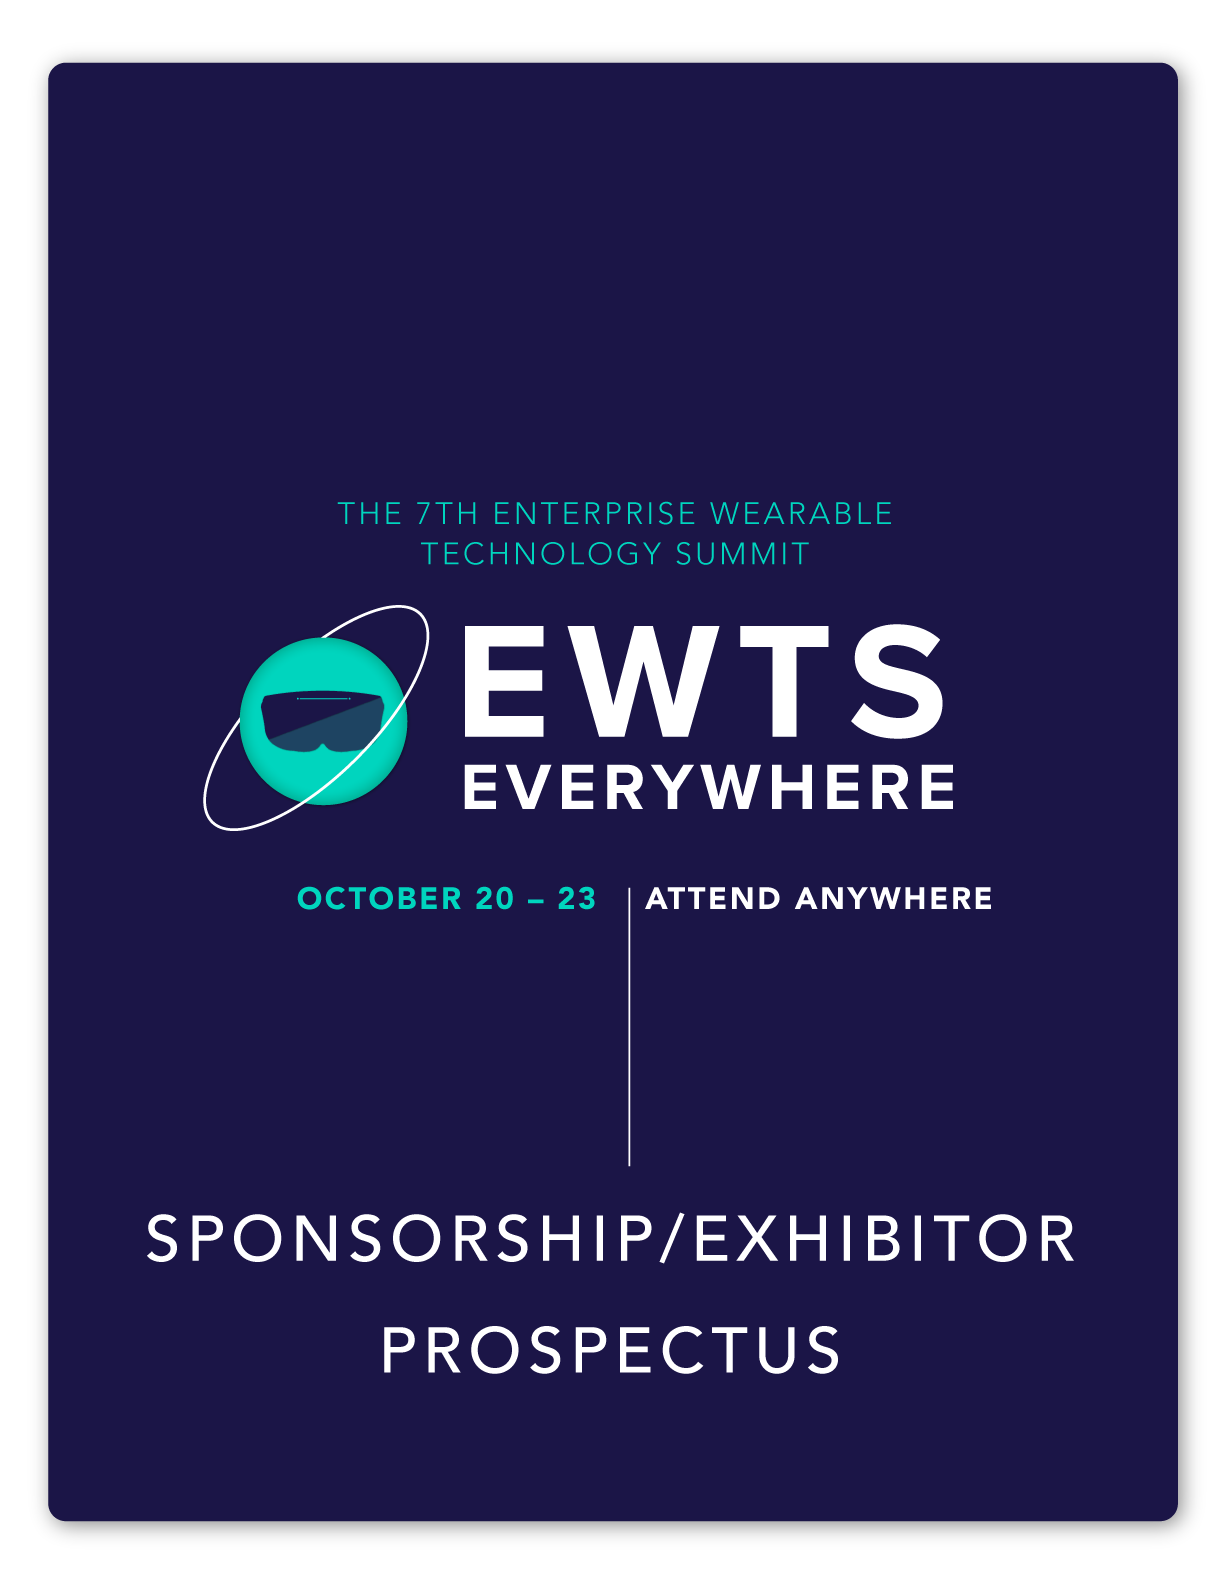 cover image of sponsorship exhibitor prospectus for tech summit